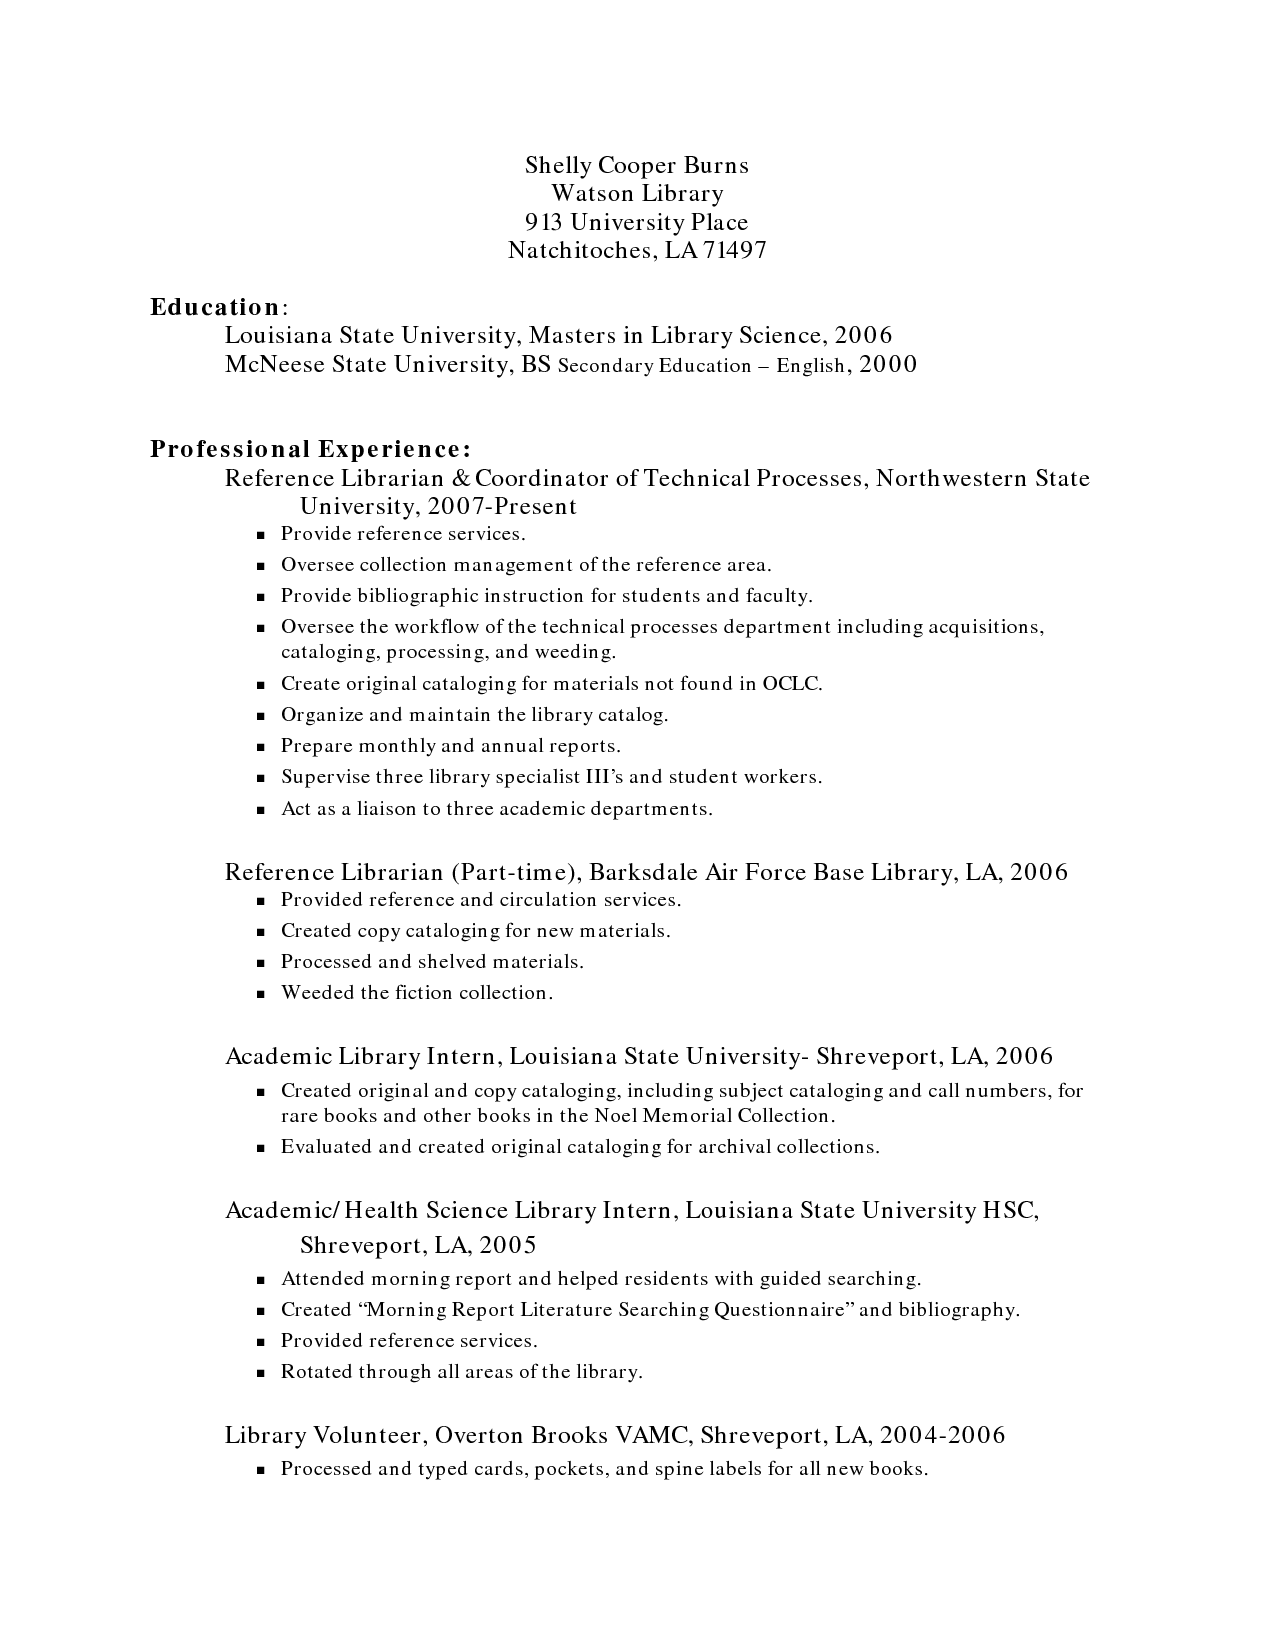 Cover Letter For Paraeducator Example Http Www Resumecareer Info Cover Letter For Paraeducator Example 5 Cover Letter Example Cover Letter Sample Lettering